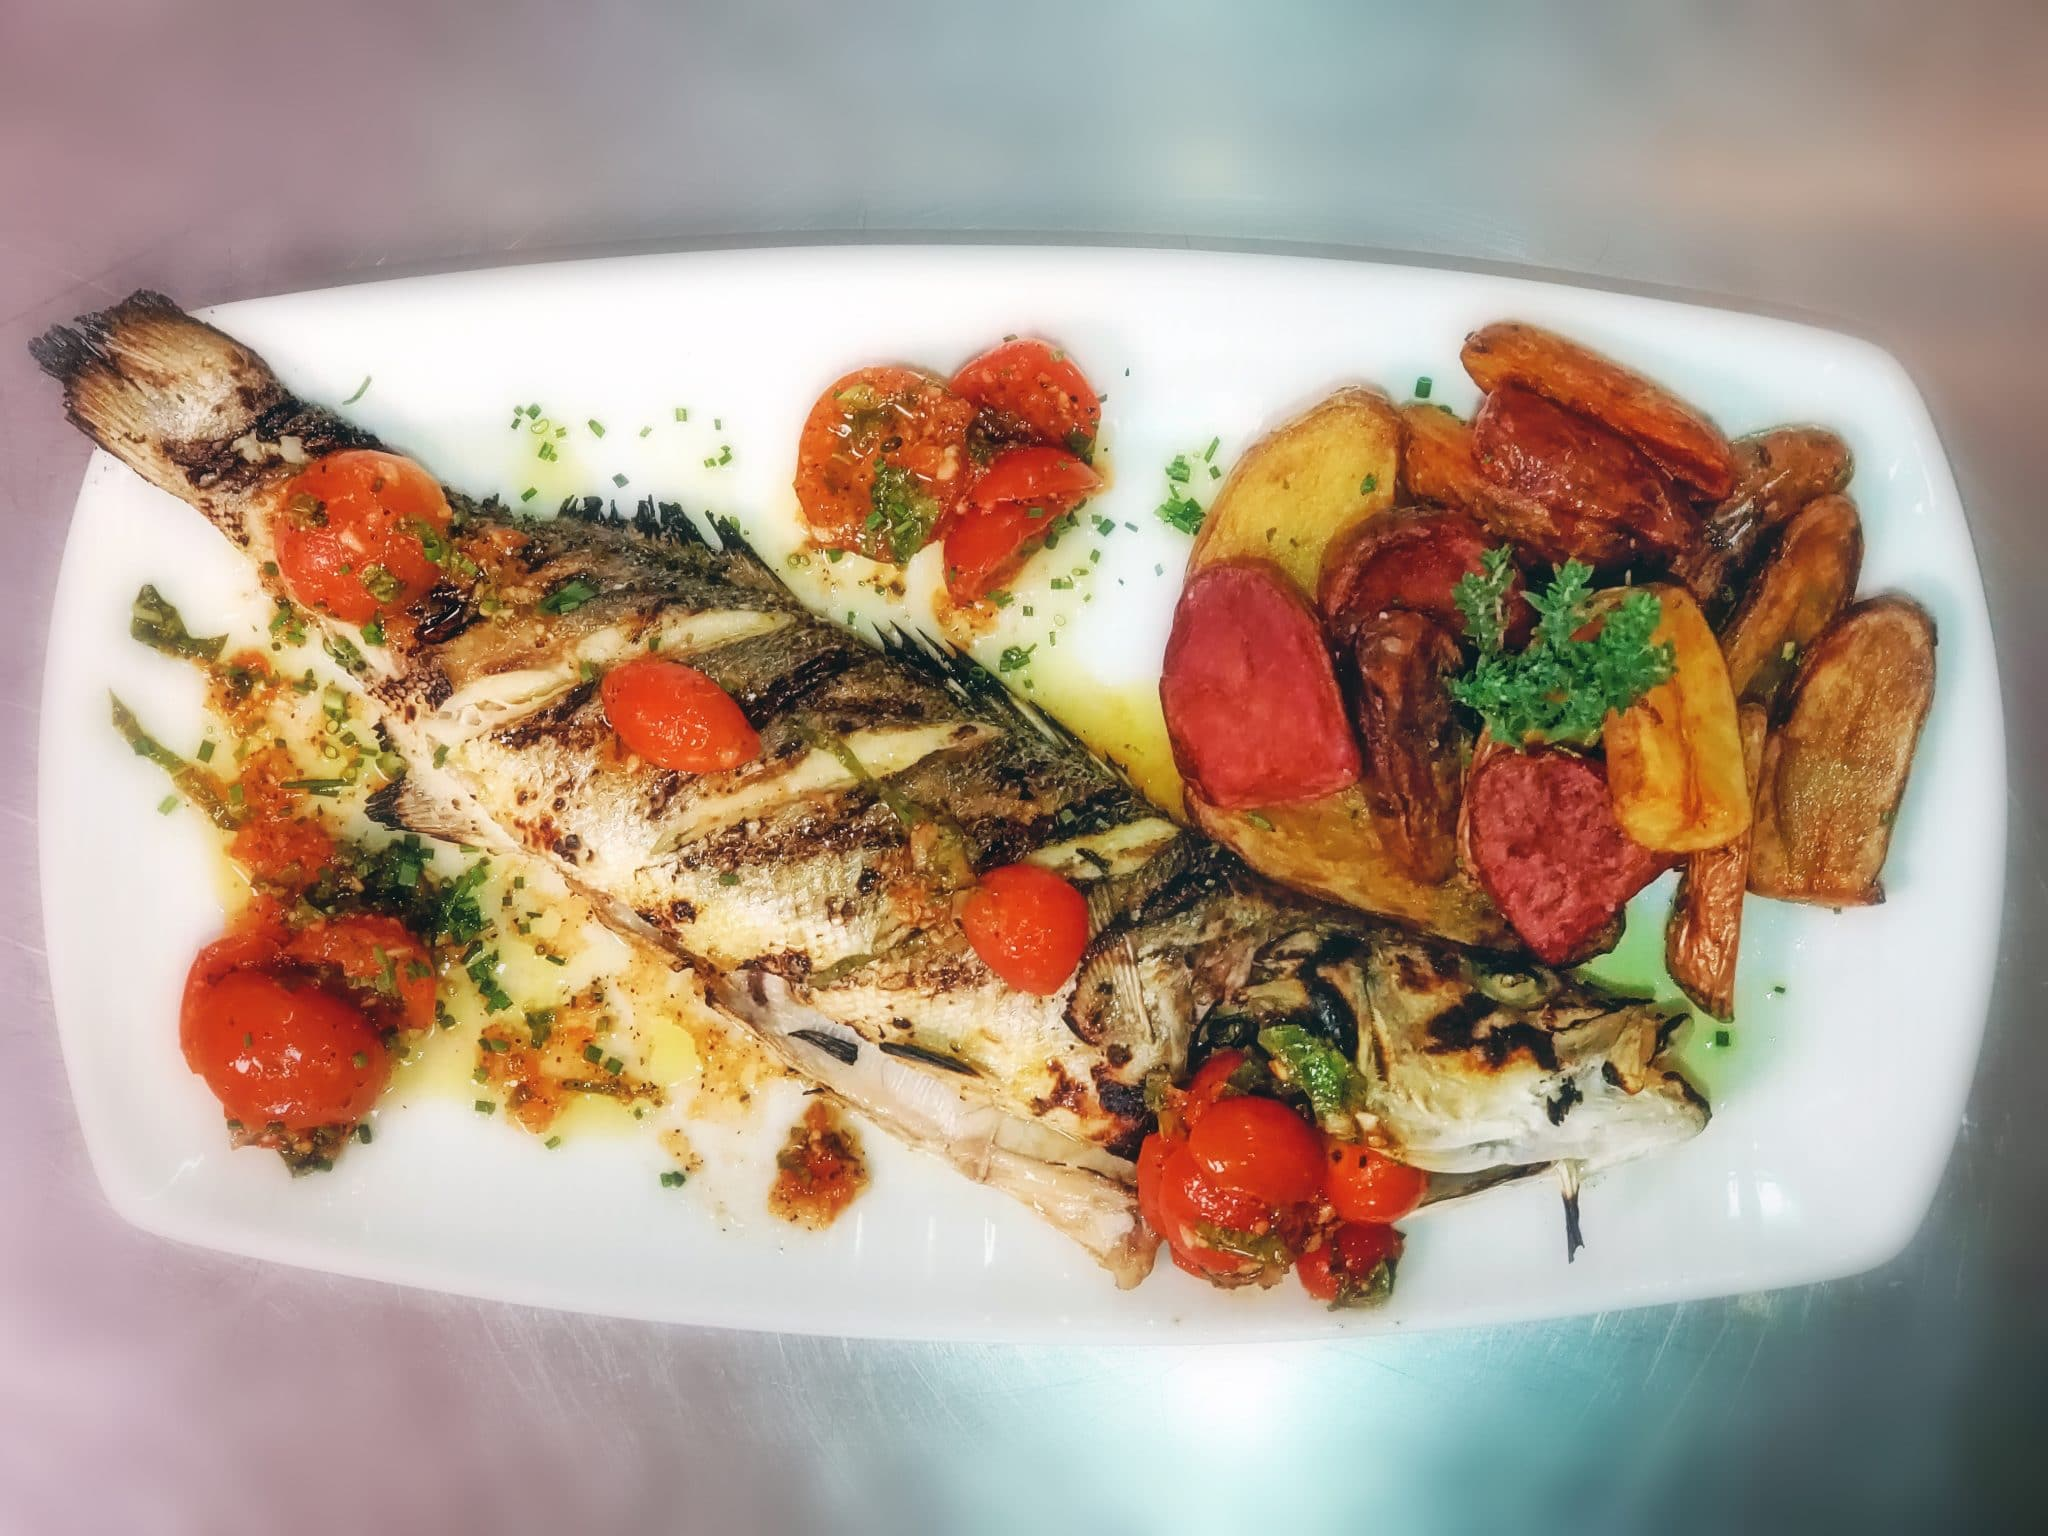 Roasted Whole European Seabass with Potatoes and Marinated Cherry Tomato Salad